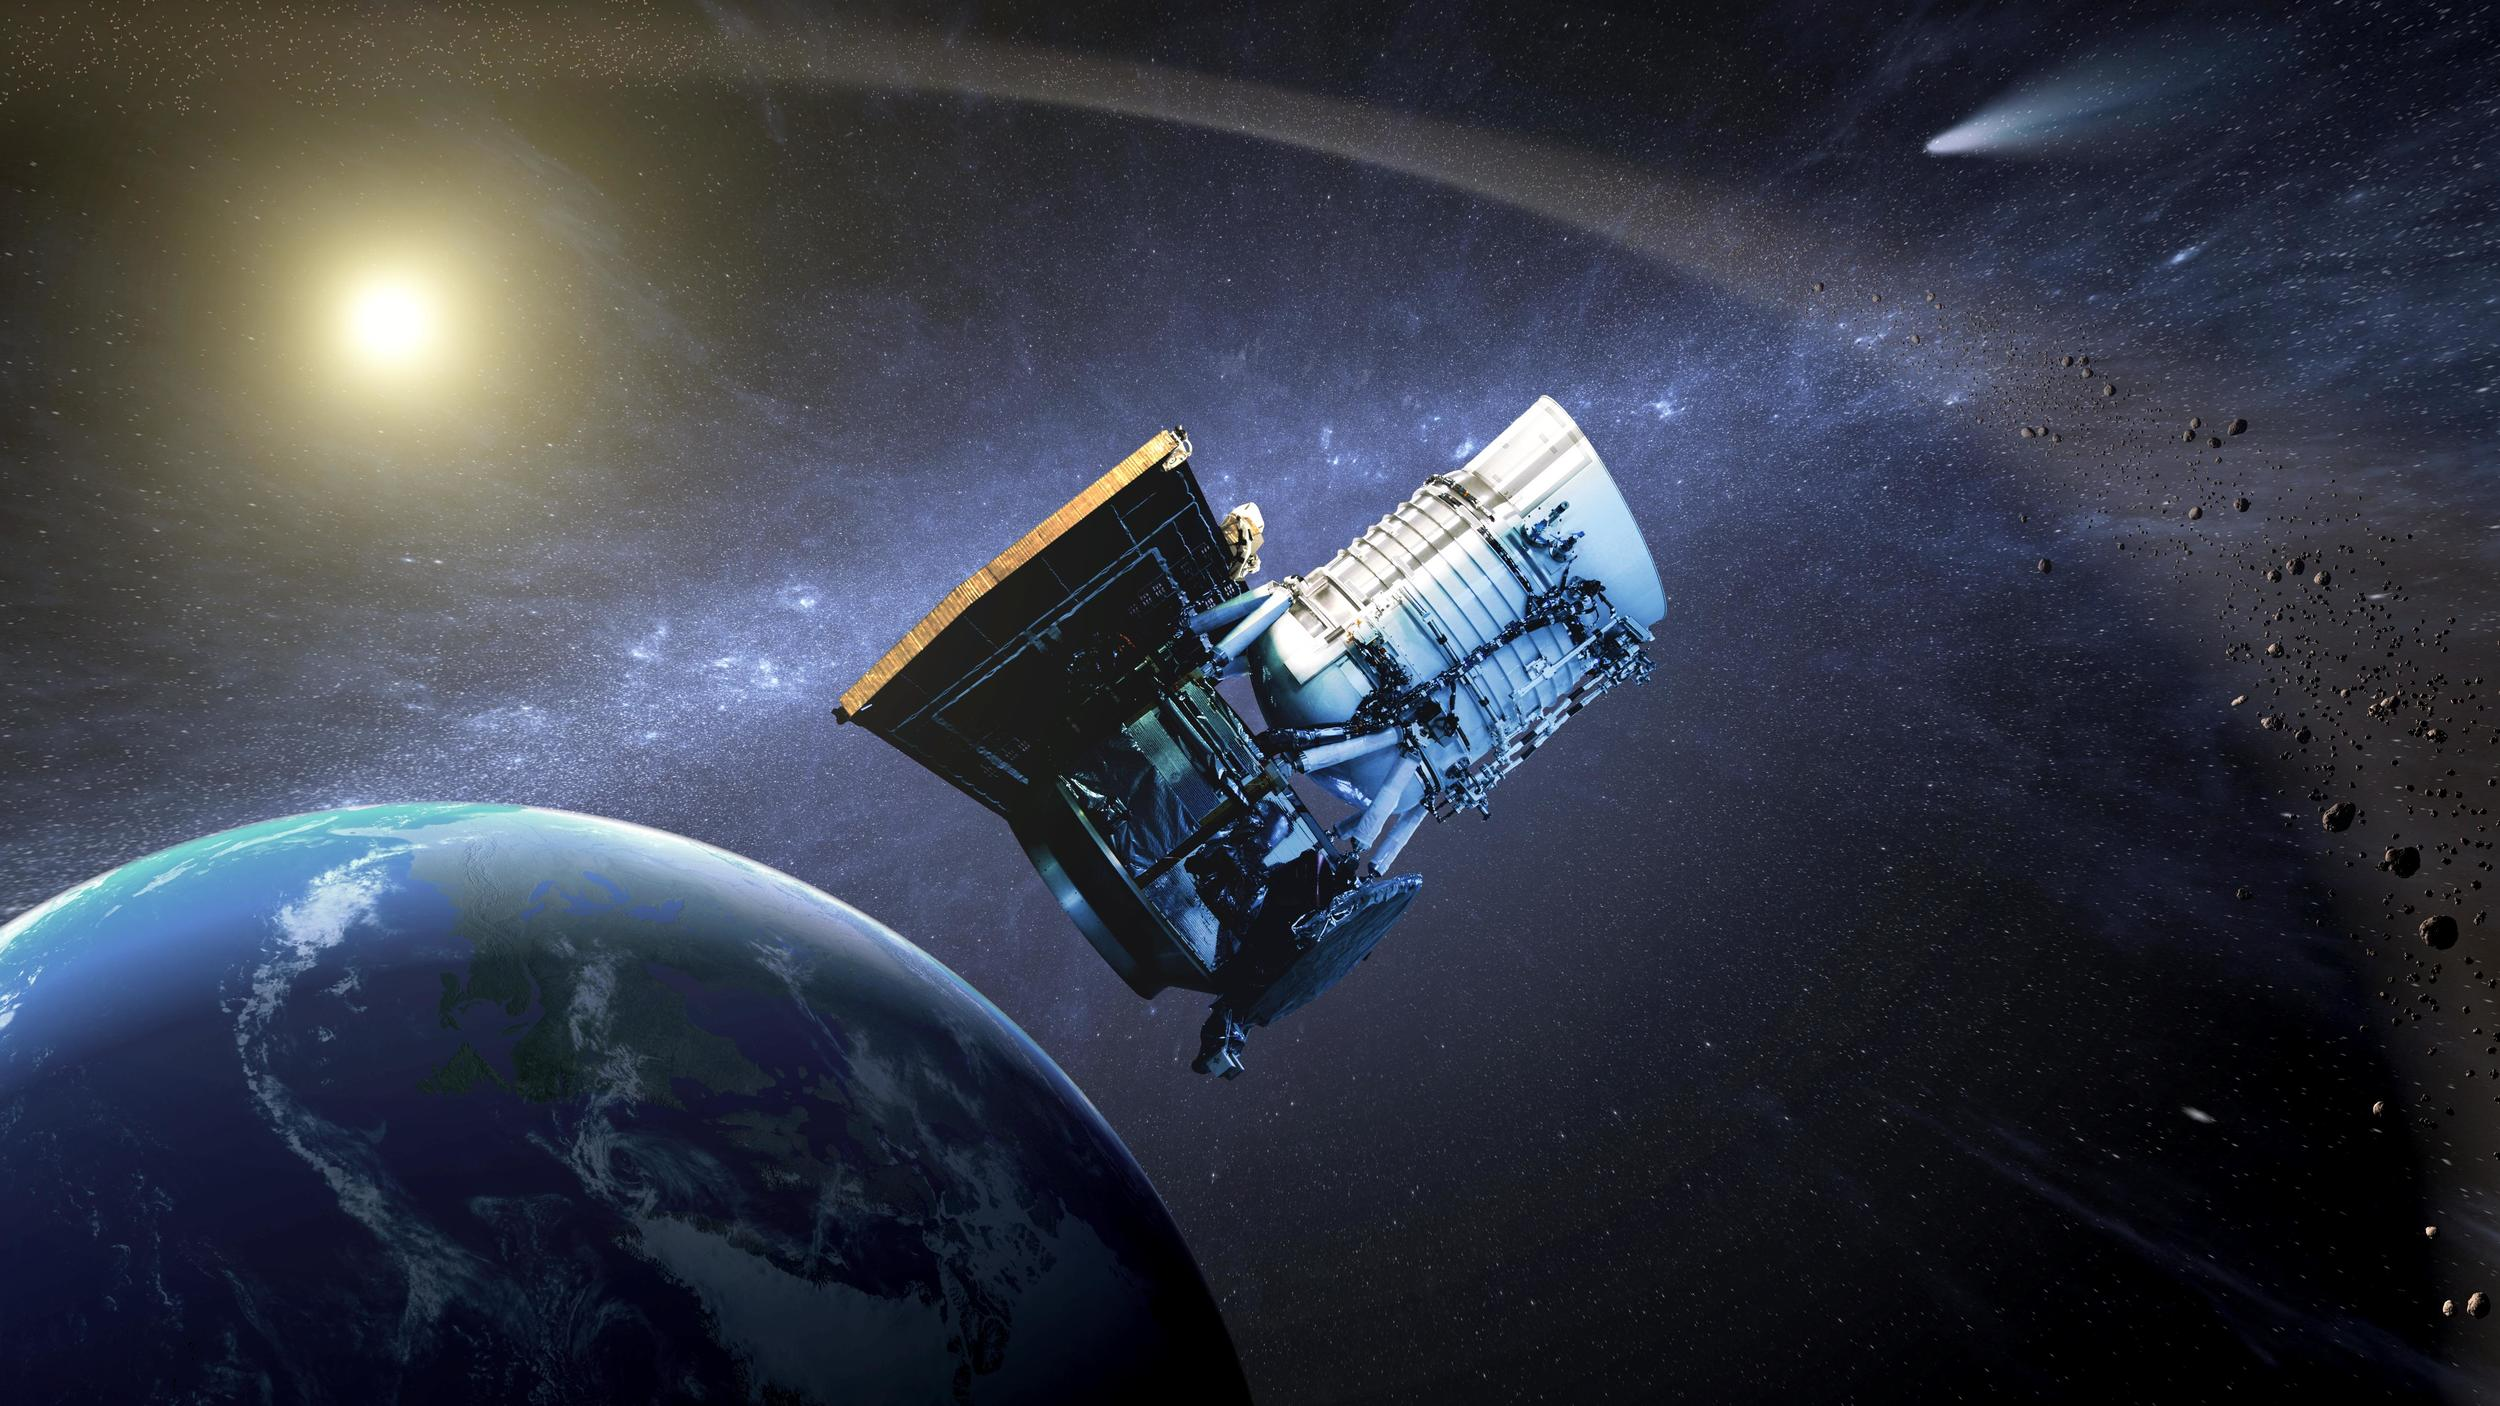 Dr. Amy Mainzer  discusses how she and her team calculated how many asteroids are out in space, waiting to be discovered.